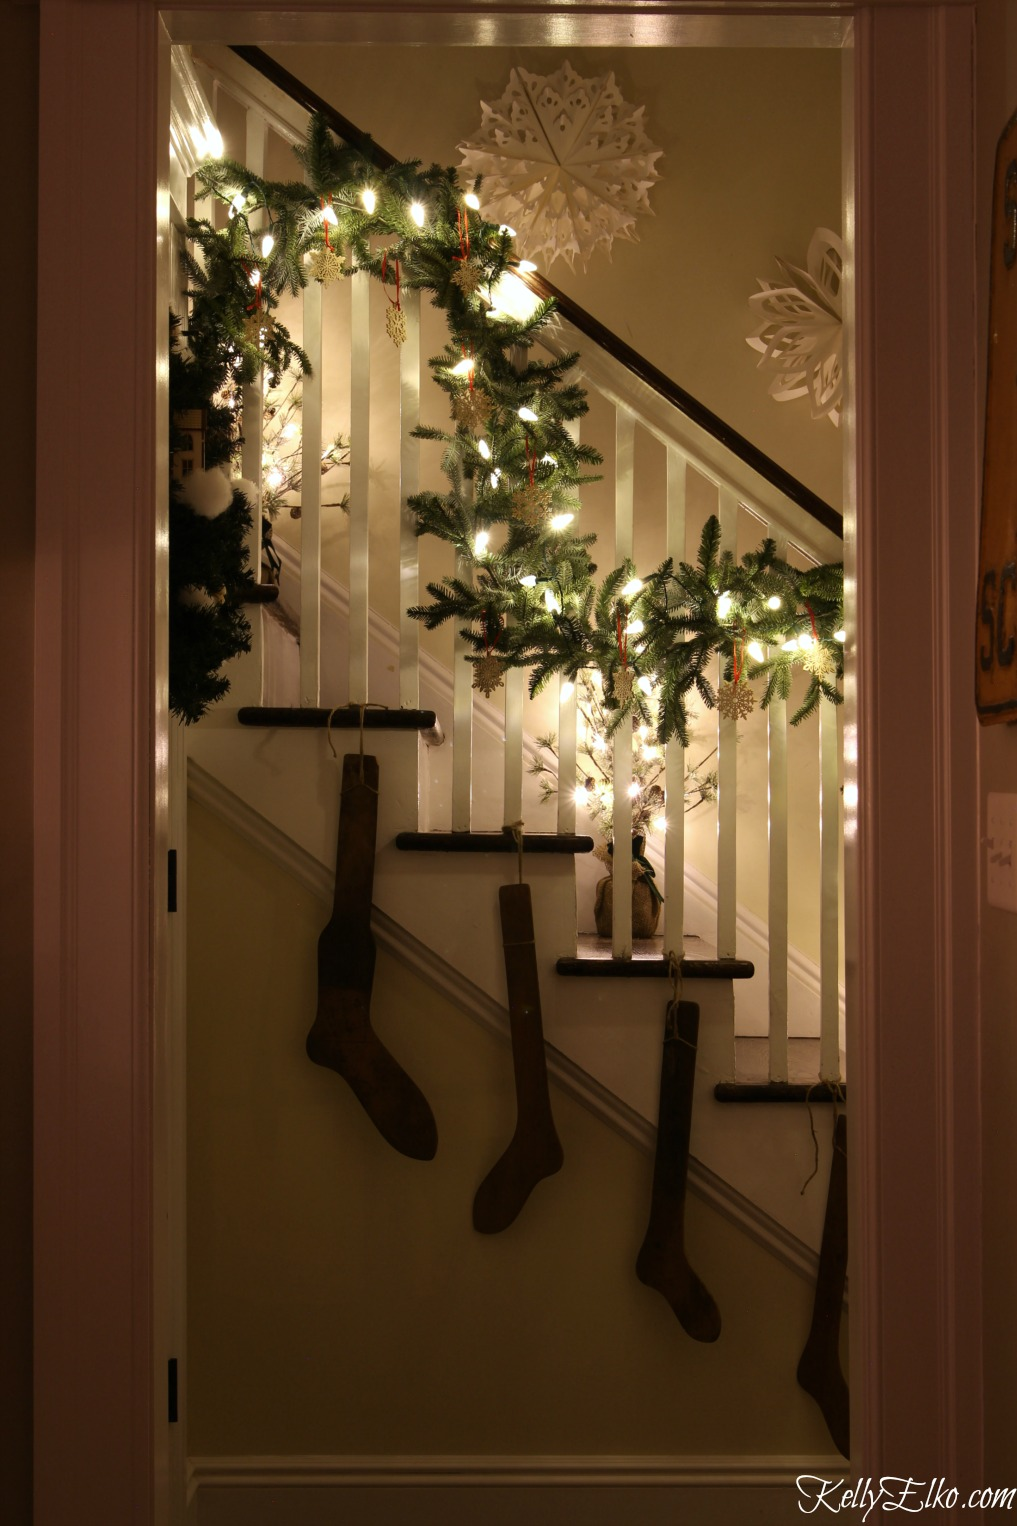 Christmas Lights at Night Home Tours - 35 homes by the glow of light - love this gorgeous banister with garland and stocking stretchers kellyelko.com